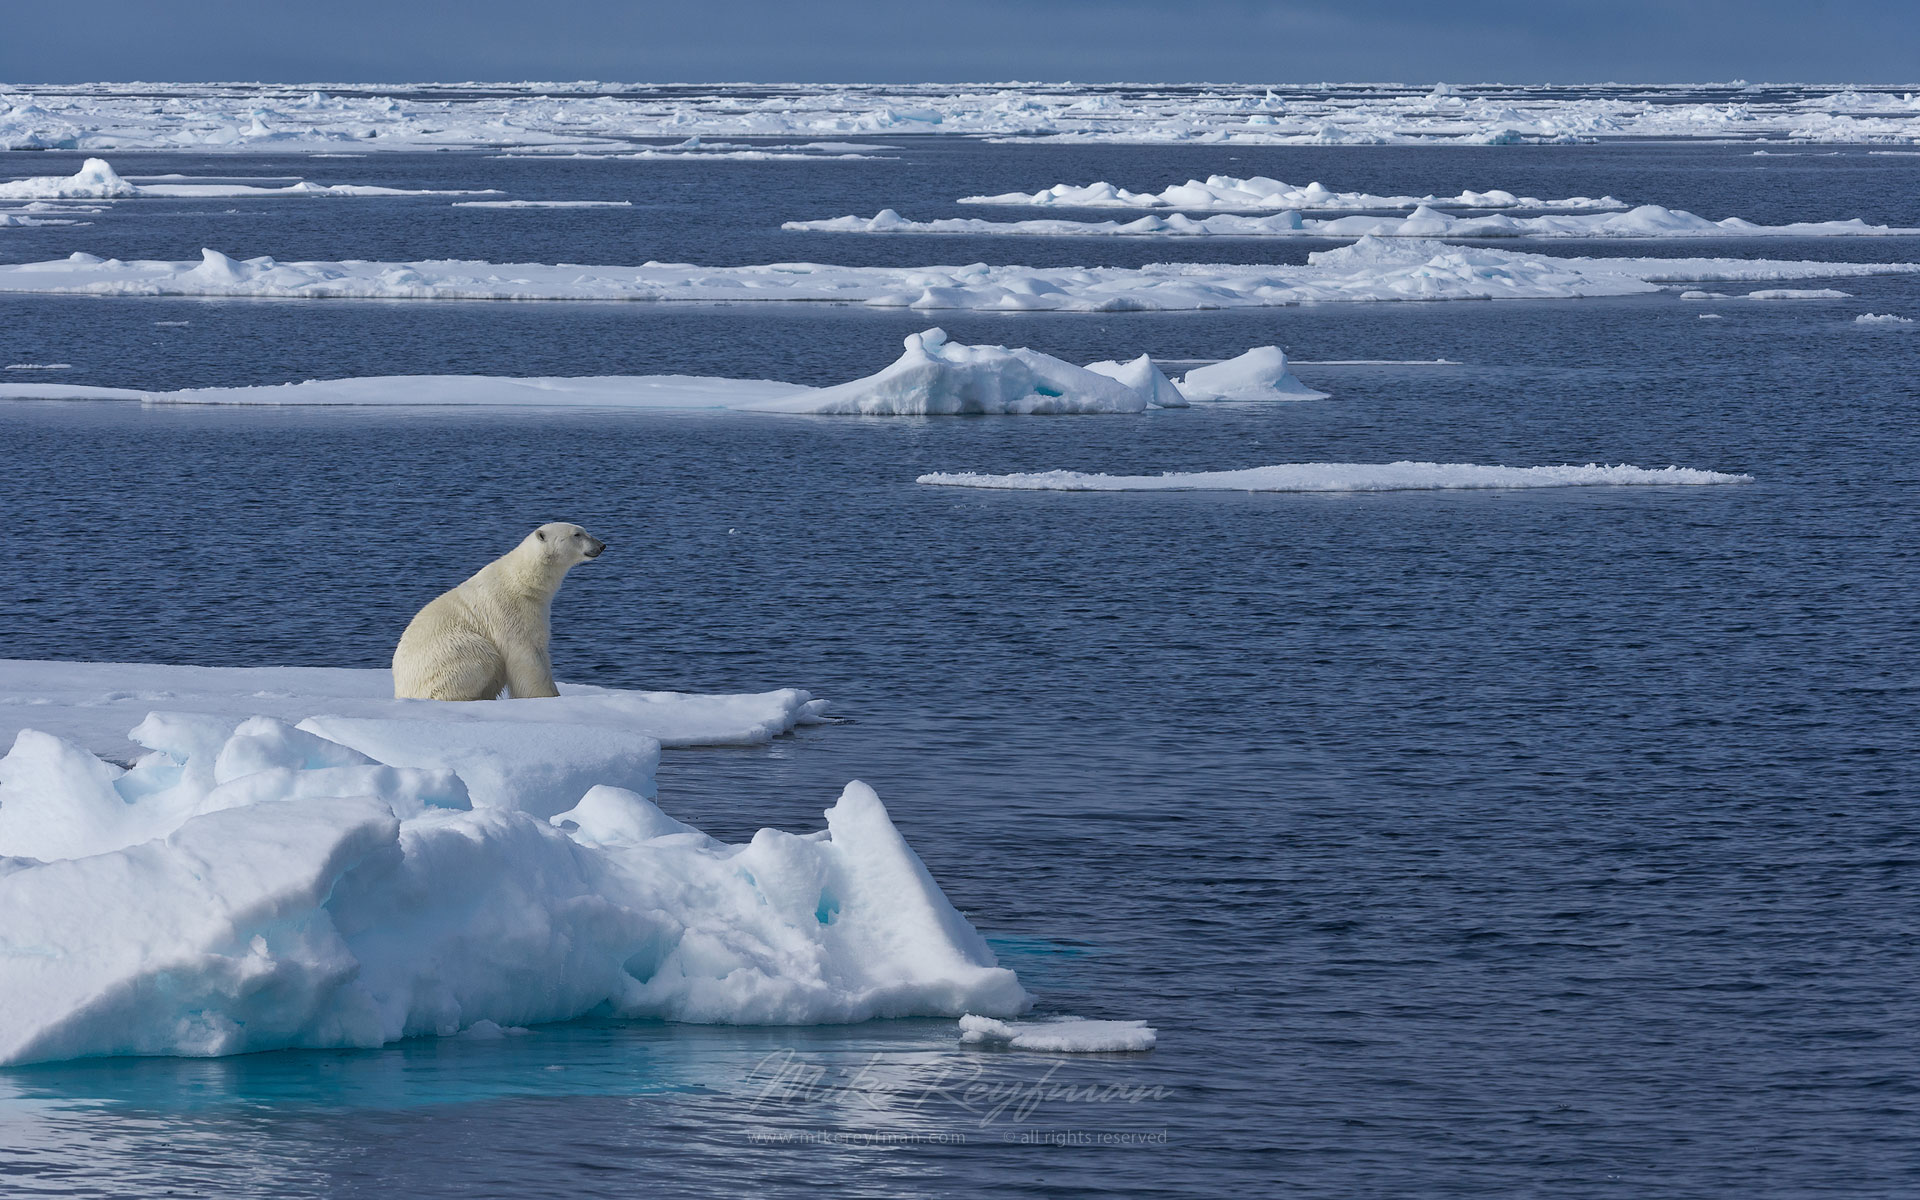 Polar bear sitting on an ice floe in Svalbard, Norway. 81st parallel North. - Polar-Bears-Svalbard-Spitsbergen-Norway - Mike Reyfman Photography